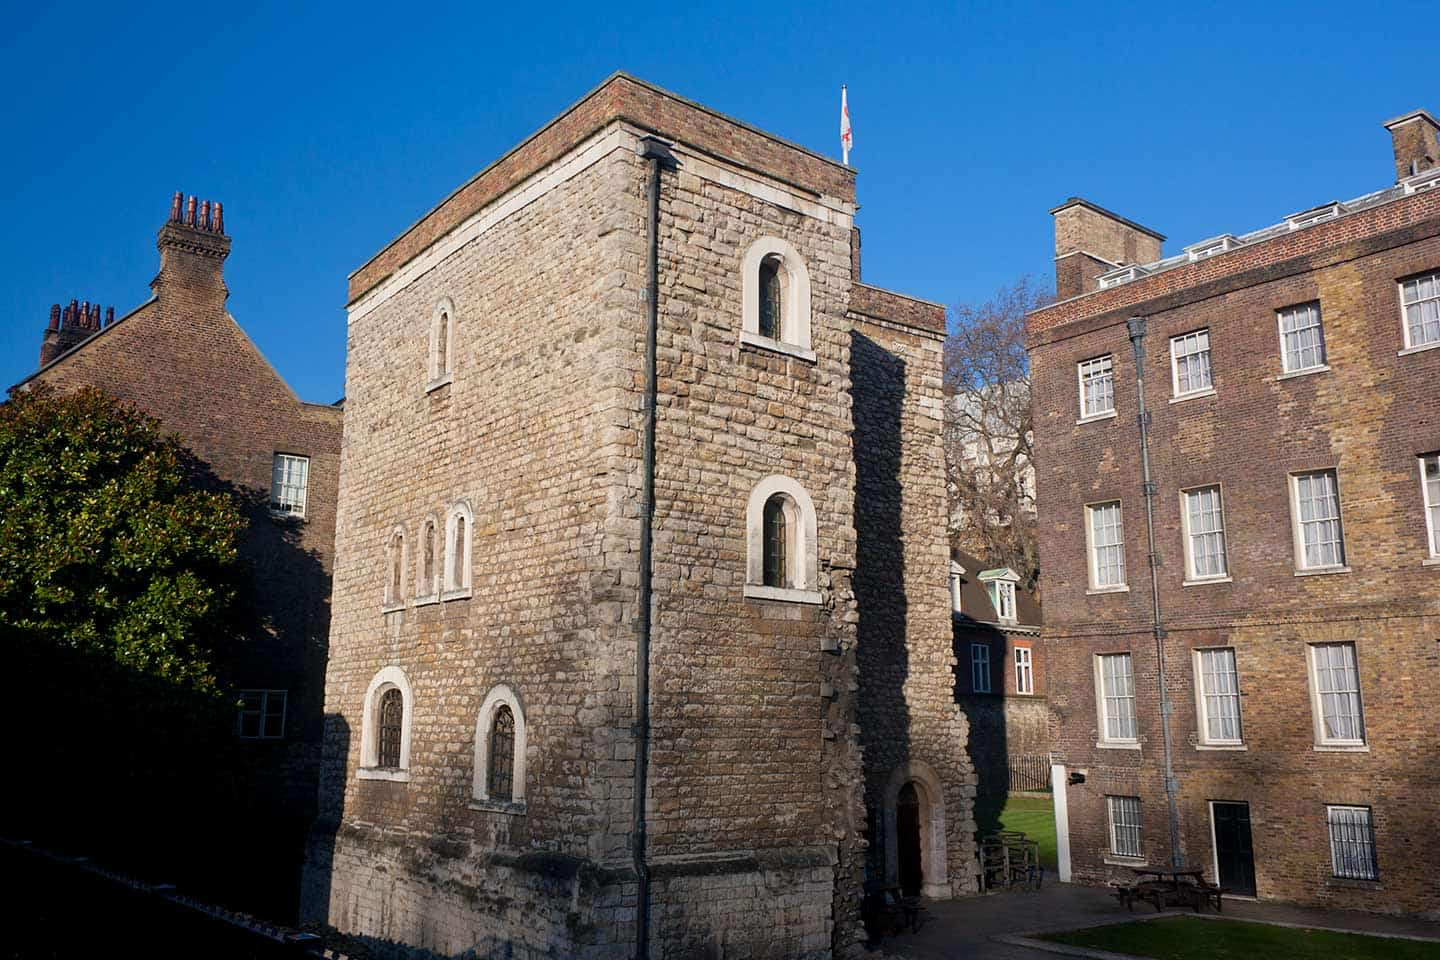 Image of the Jewel Tower in Westminster, London